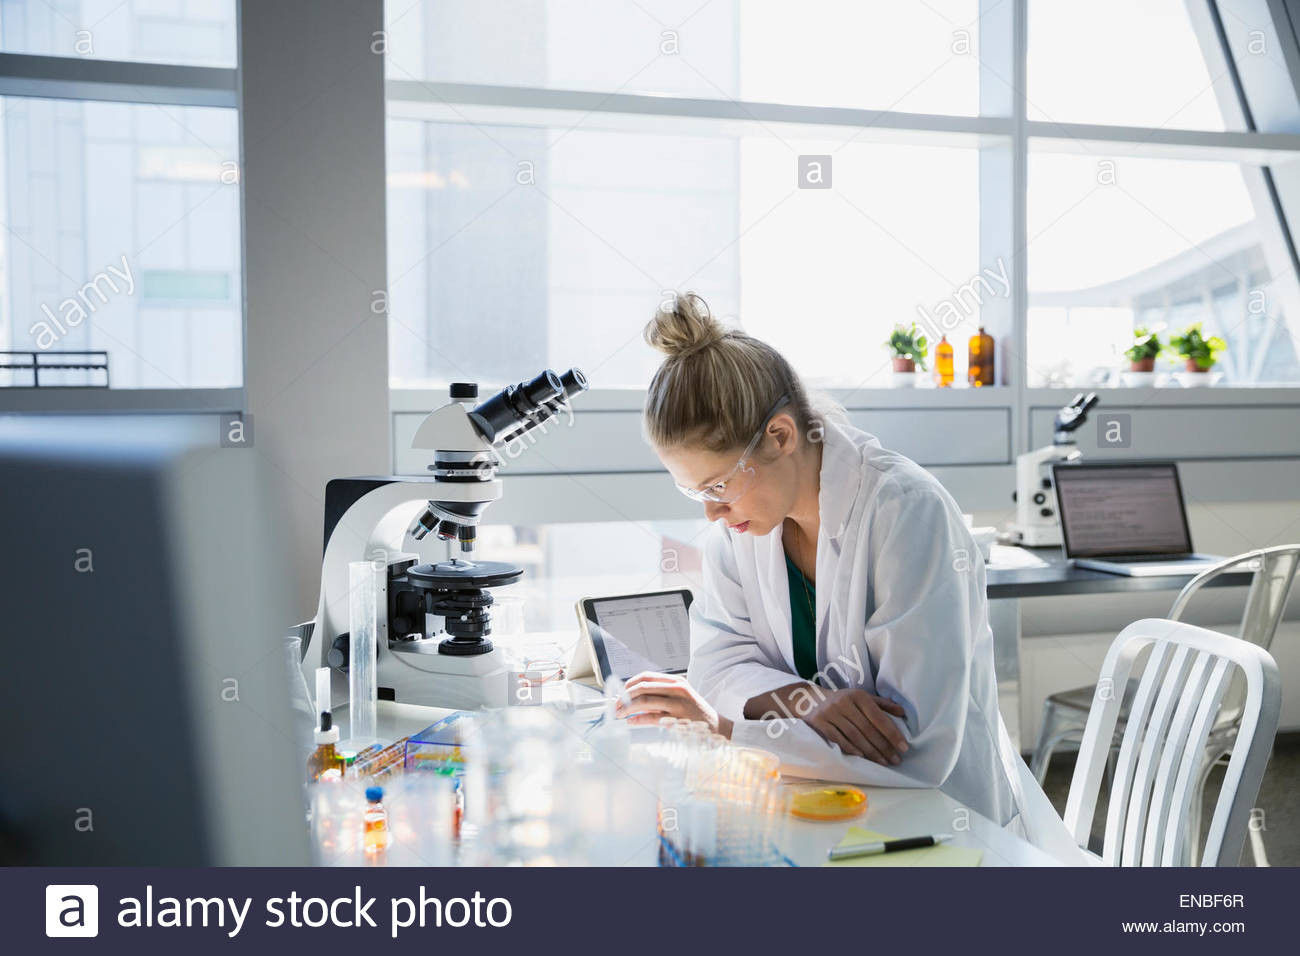 Scientist conducting scientific experiment in laboratory - Stock Image